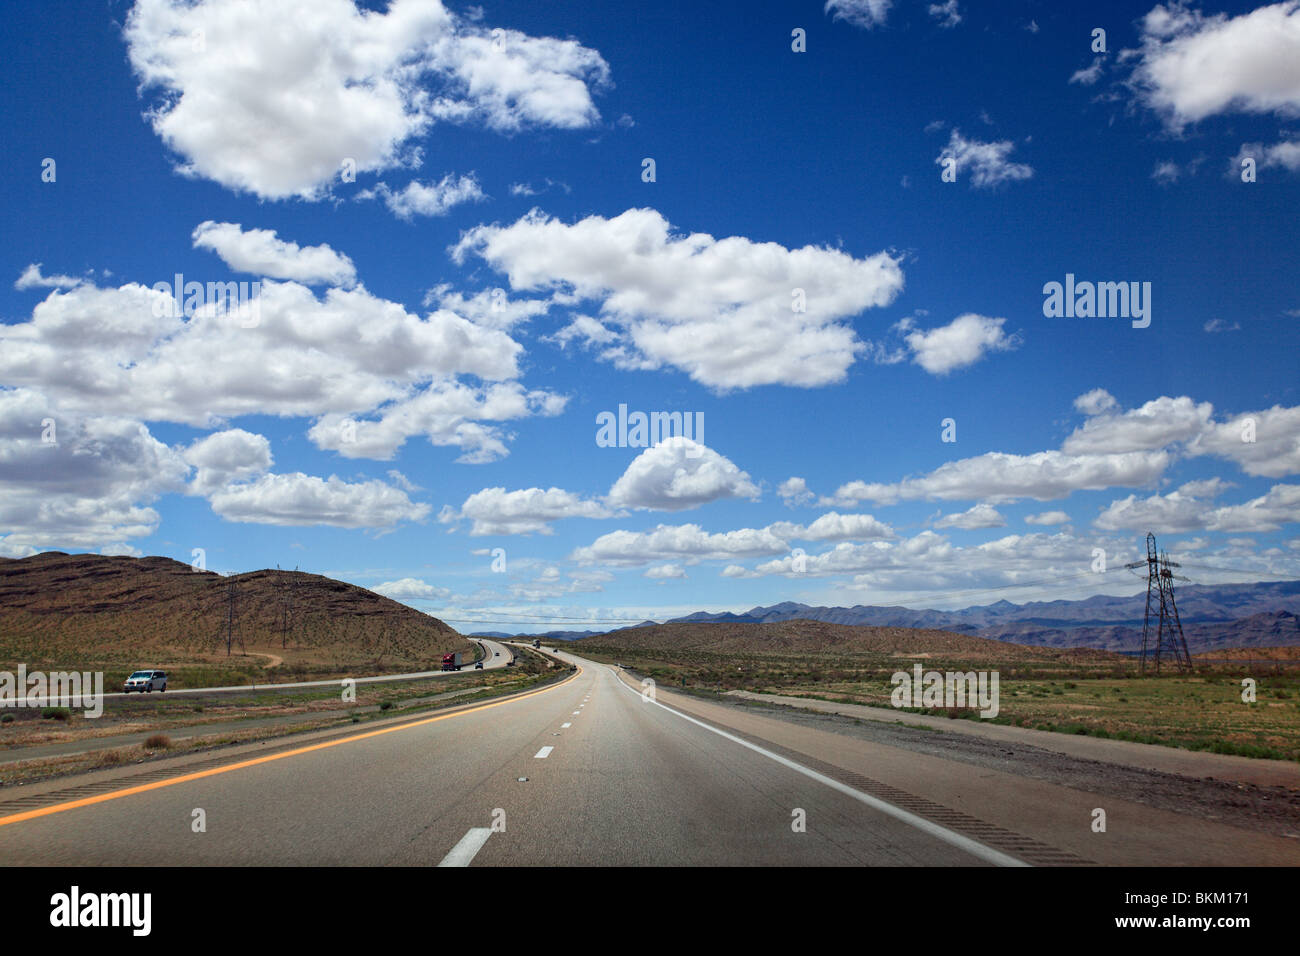 A stretch of the I-95 interstate highway in northern Nevada - Stock Image